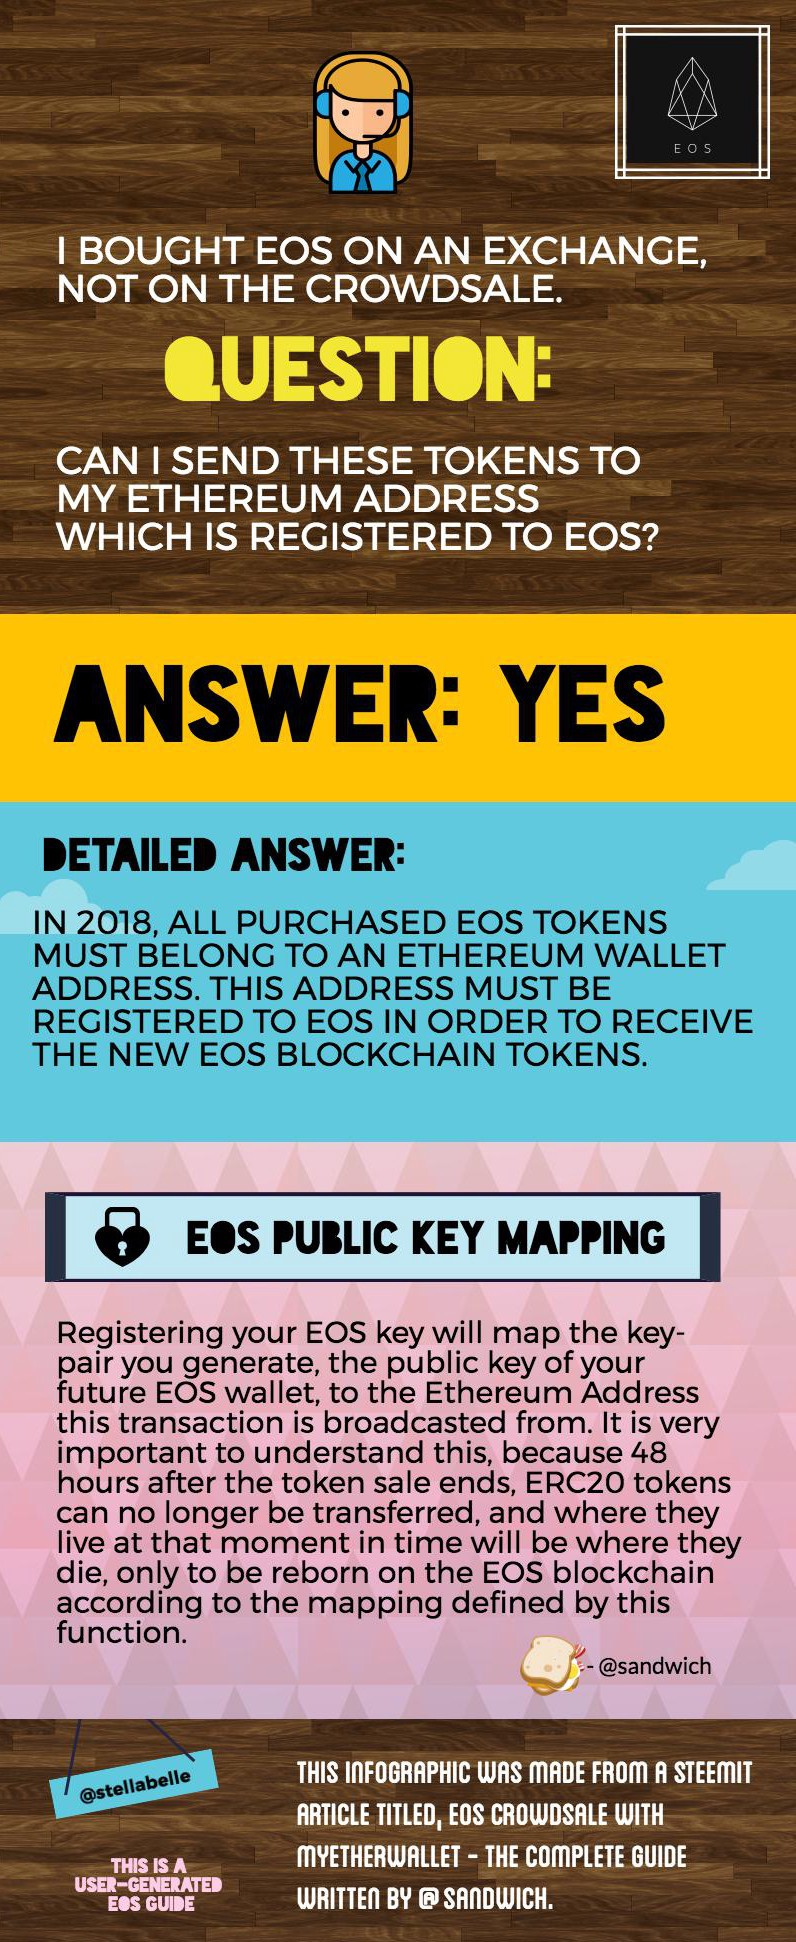 /can-i-send-my-eos-i-bought-on-an-exchange-to-my-ethereum-address-which-is-registered-to-eos-c001e287a0e0 feature image